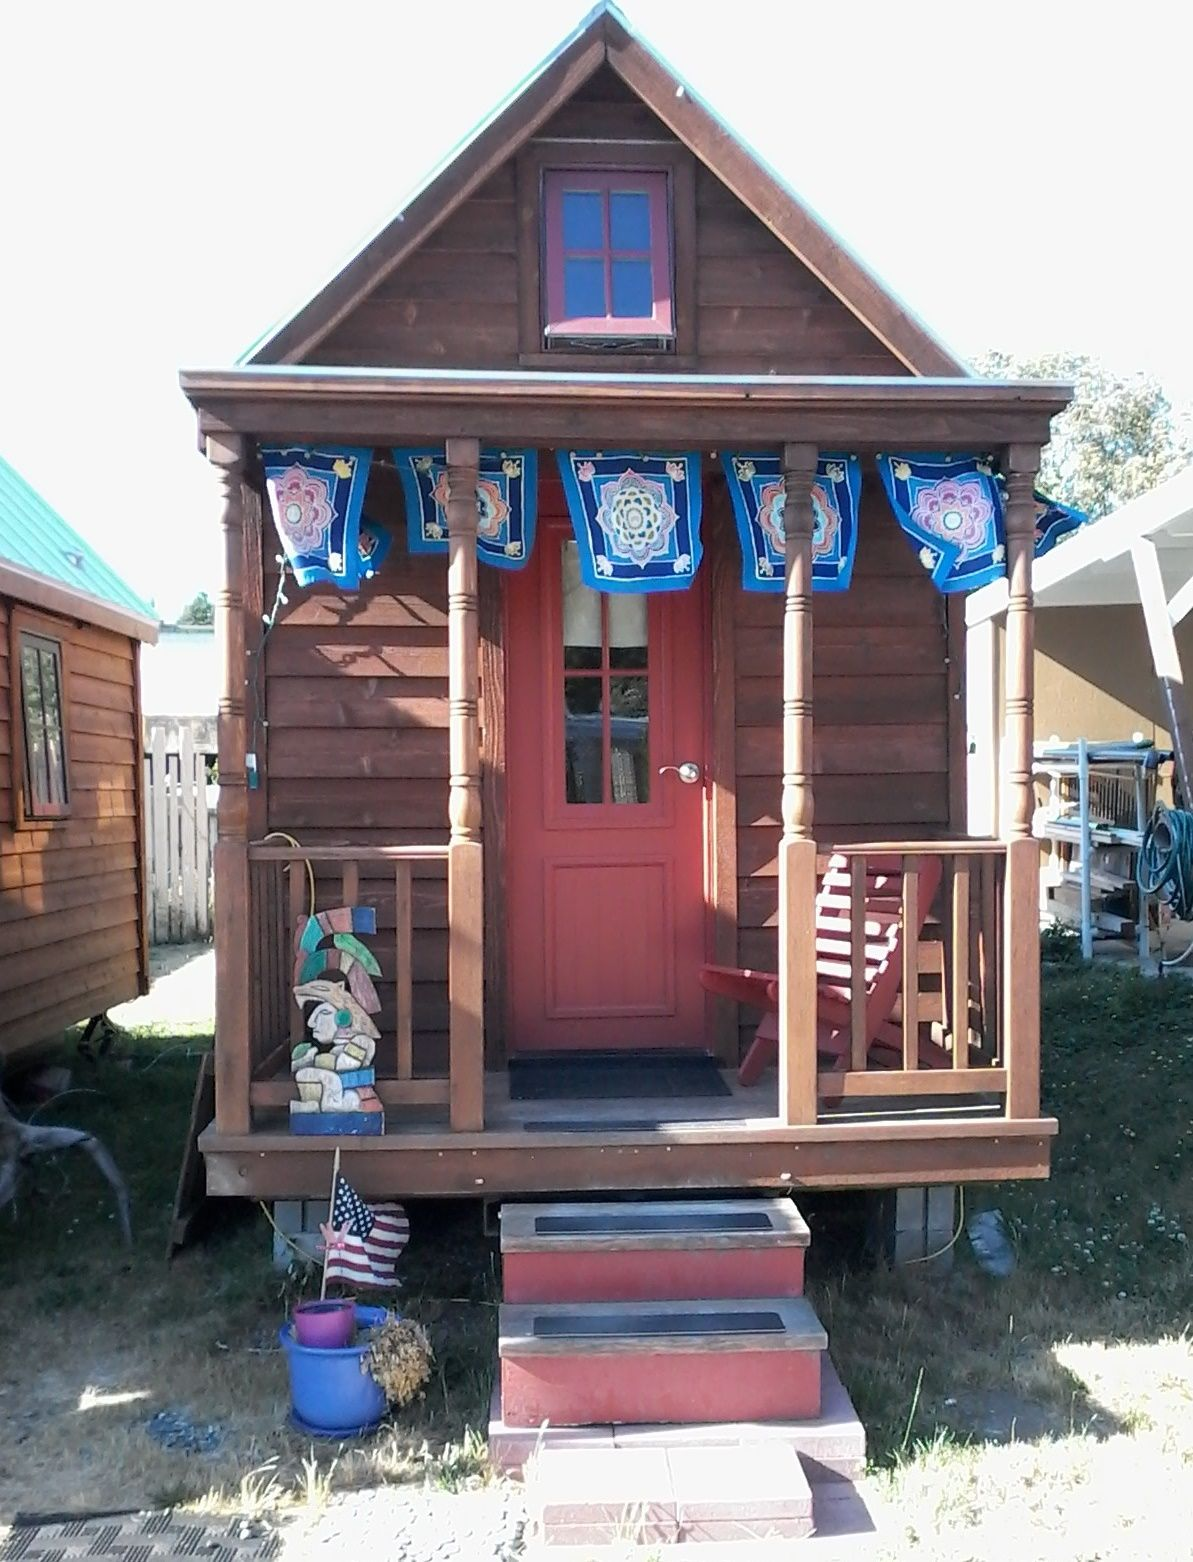 Used Tumbleweed Tiny Houses With Unique Terrace And Roof Triangle Or Pyramid Artistic And Attractive Tumbleweed Tiny Homes Tiny Houses For Sale Tiny House